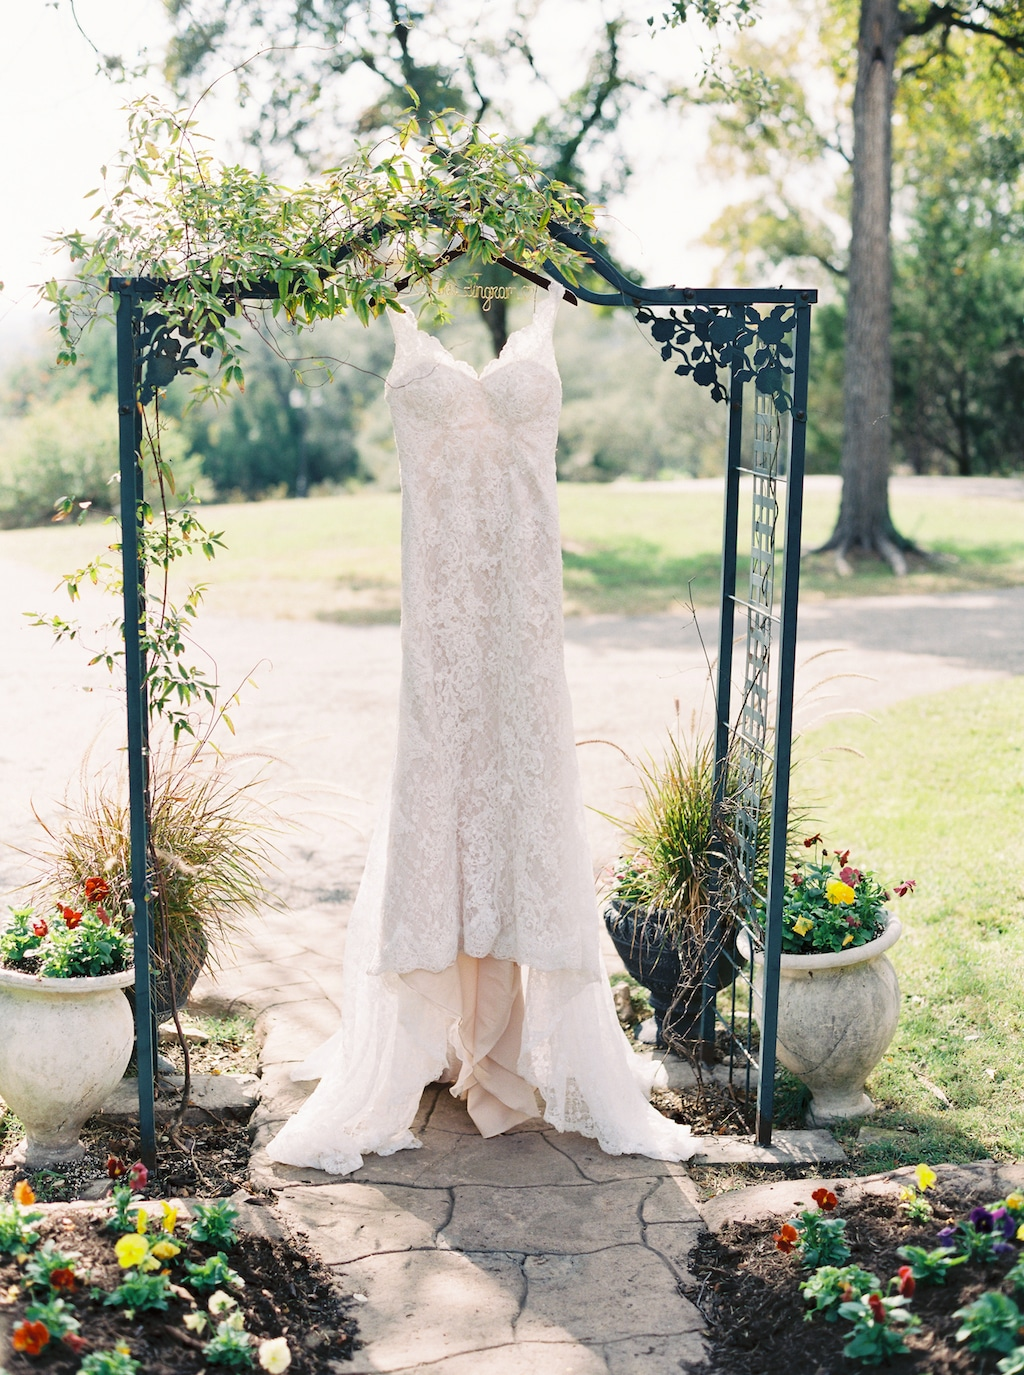 A lacy wedding dress hangs from a small green arbor on the grounds of a wedding venue in Georgetown, Texas.